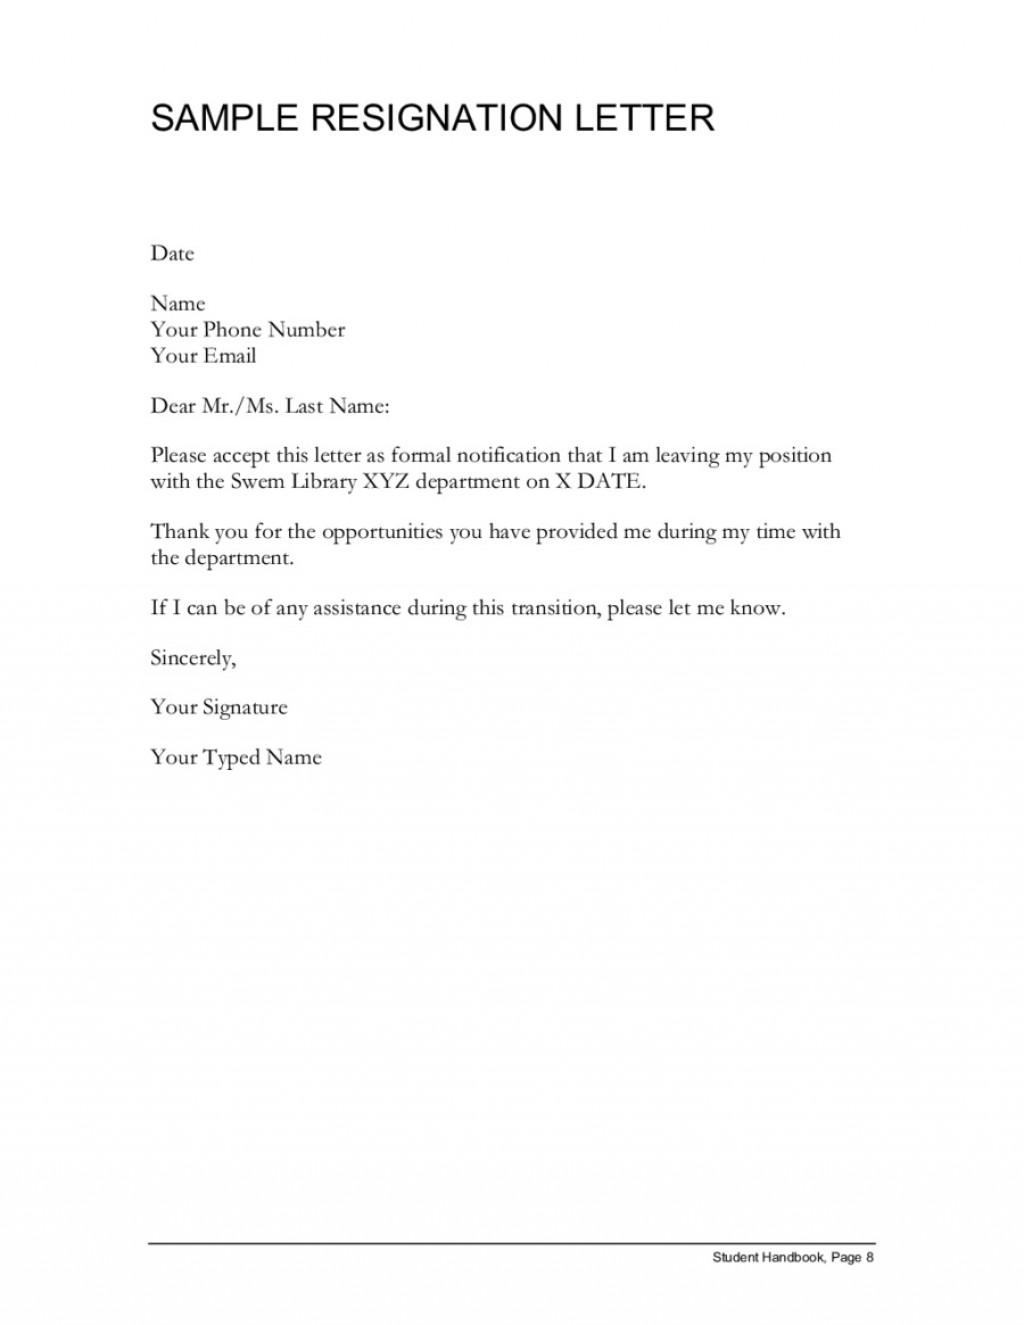 002 Fantastic Professional Resignation Letter Template High Def  Best Format Pdf How To Write ALarge